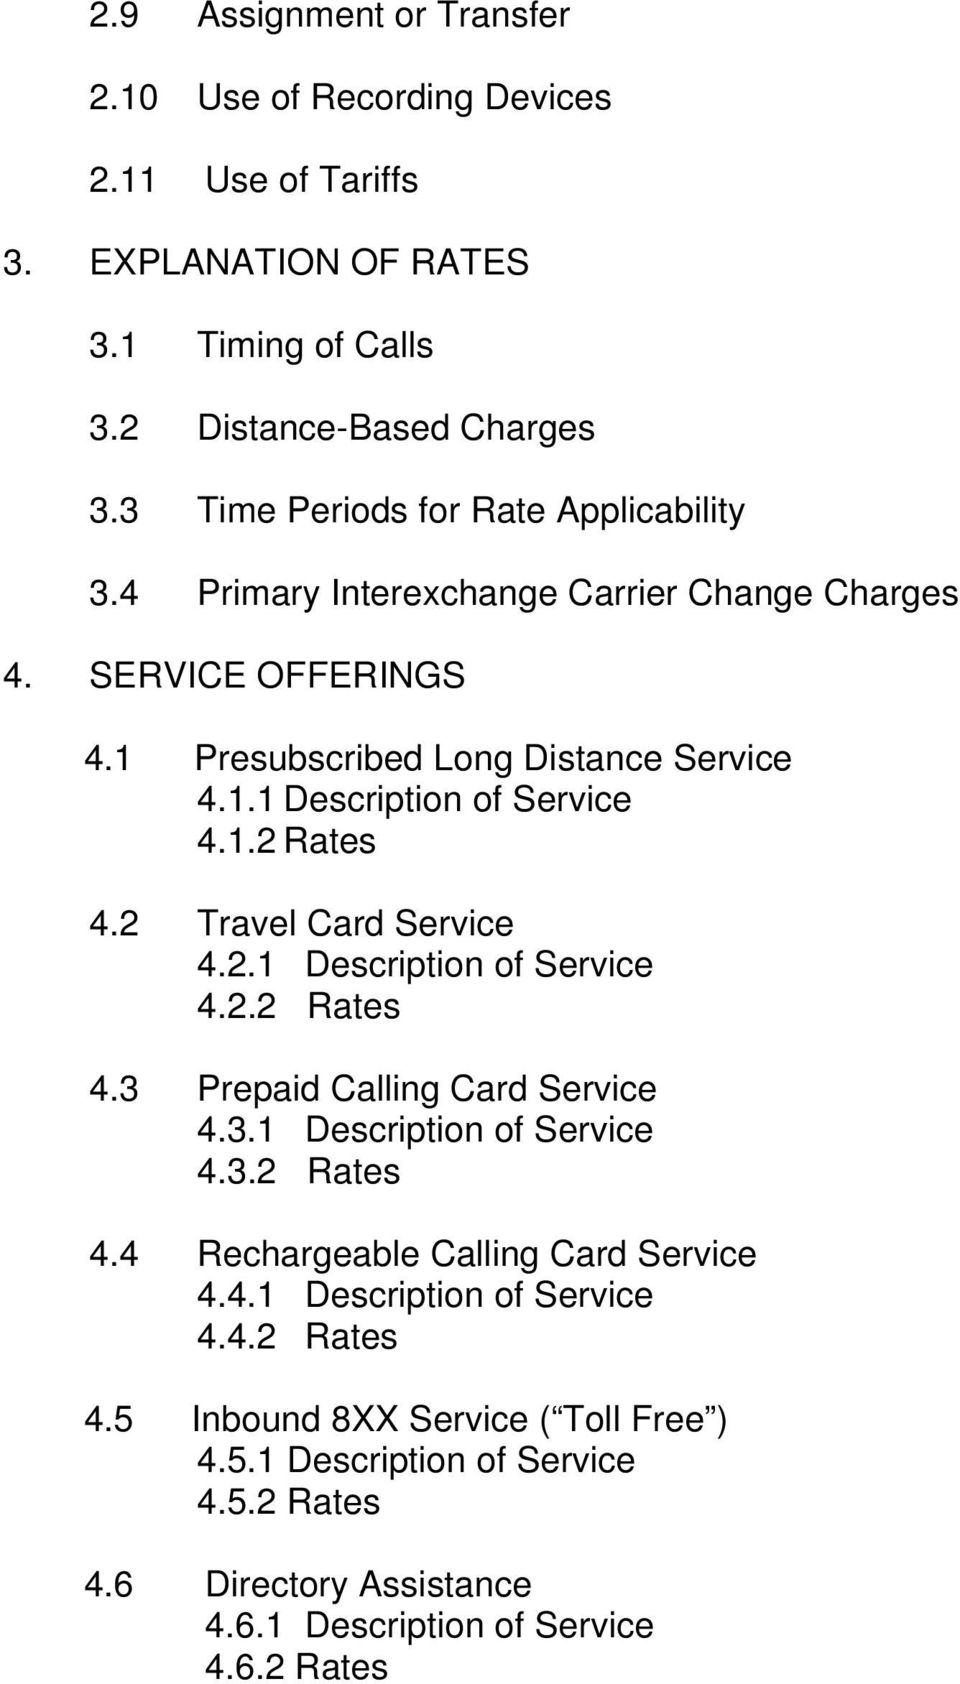 1.2 Rates 4.2 Travel Card Service 4.2.1 Description of Service 4.2.2 Rates 4.3 Prepaid Calling Card Service 4.3.1 Description of Service 4.3.2 Rates 4.4 Rechargeable Calling Card Service 4.